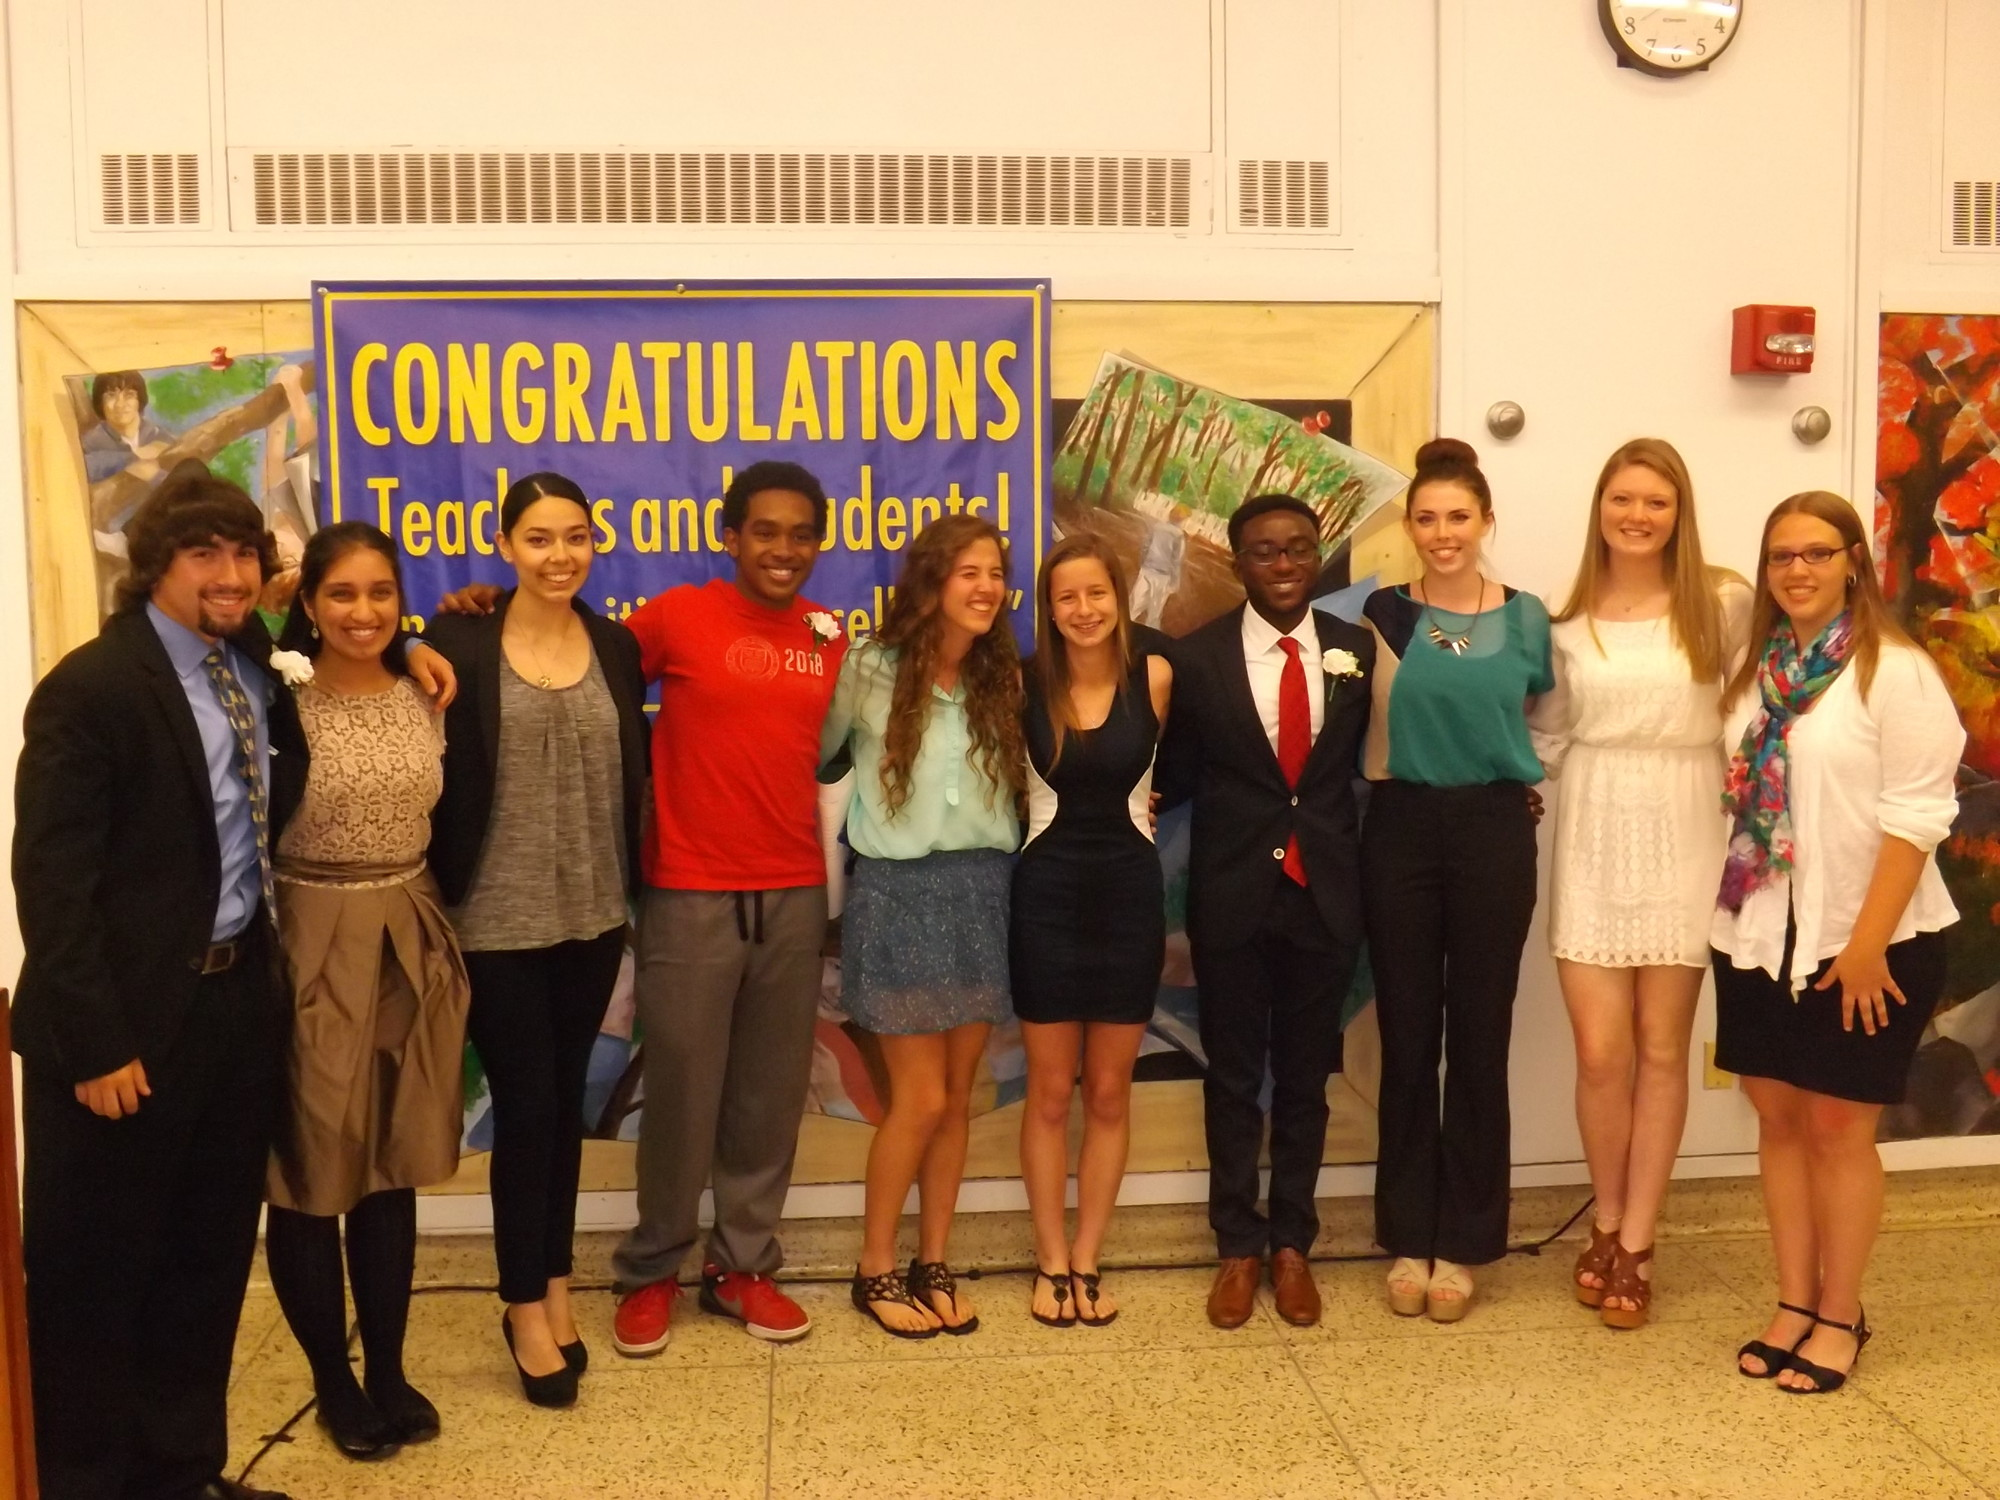 Ten Baldwin seniors honored teachers who have made an impact on their lives. The students represented a range of strengths, including academics, arts and athletics.